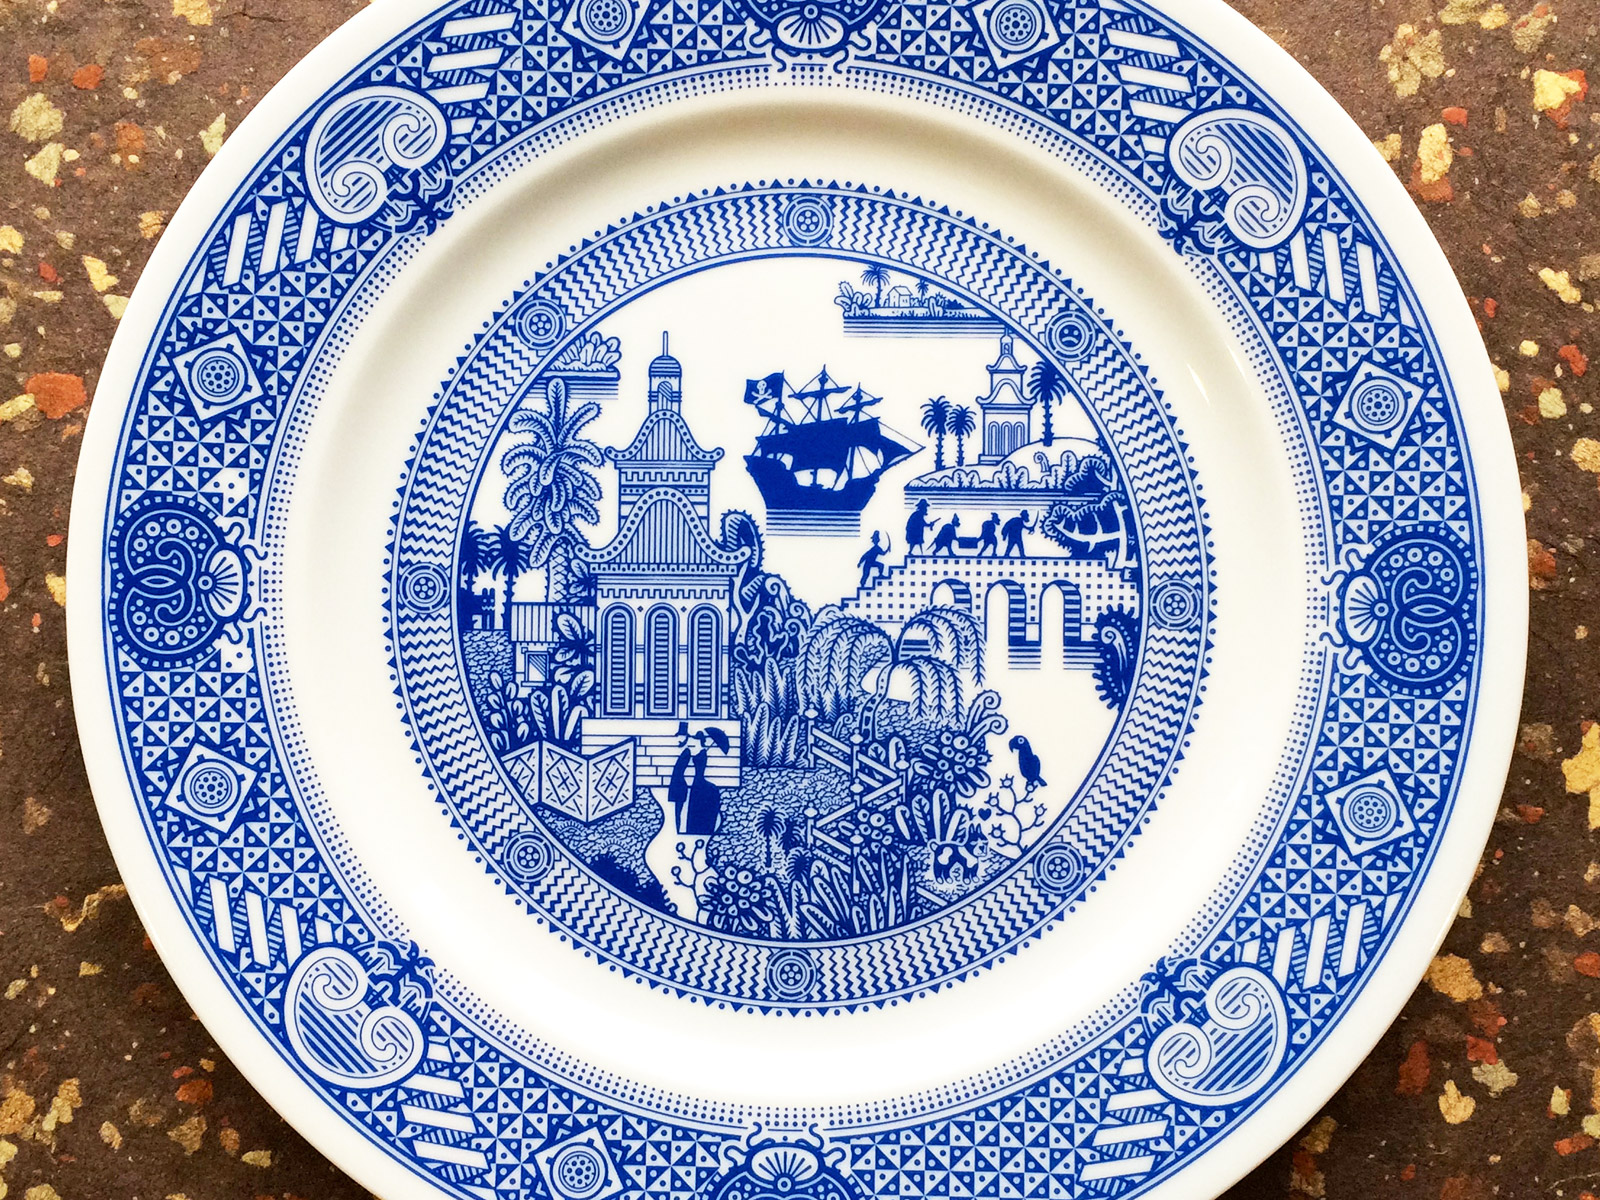 Calamityware 39 s porcelain dinosaur platter looks like fine for Plain white plates ikea